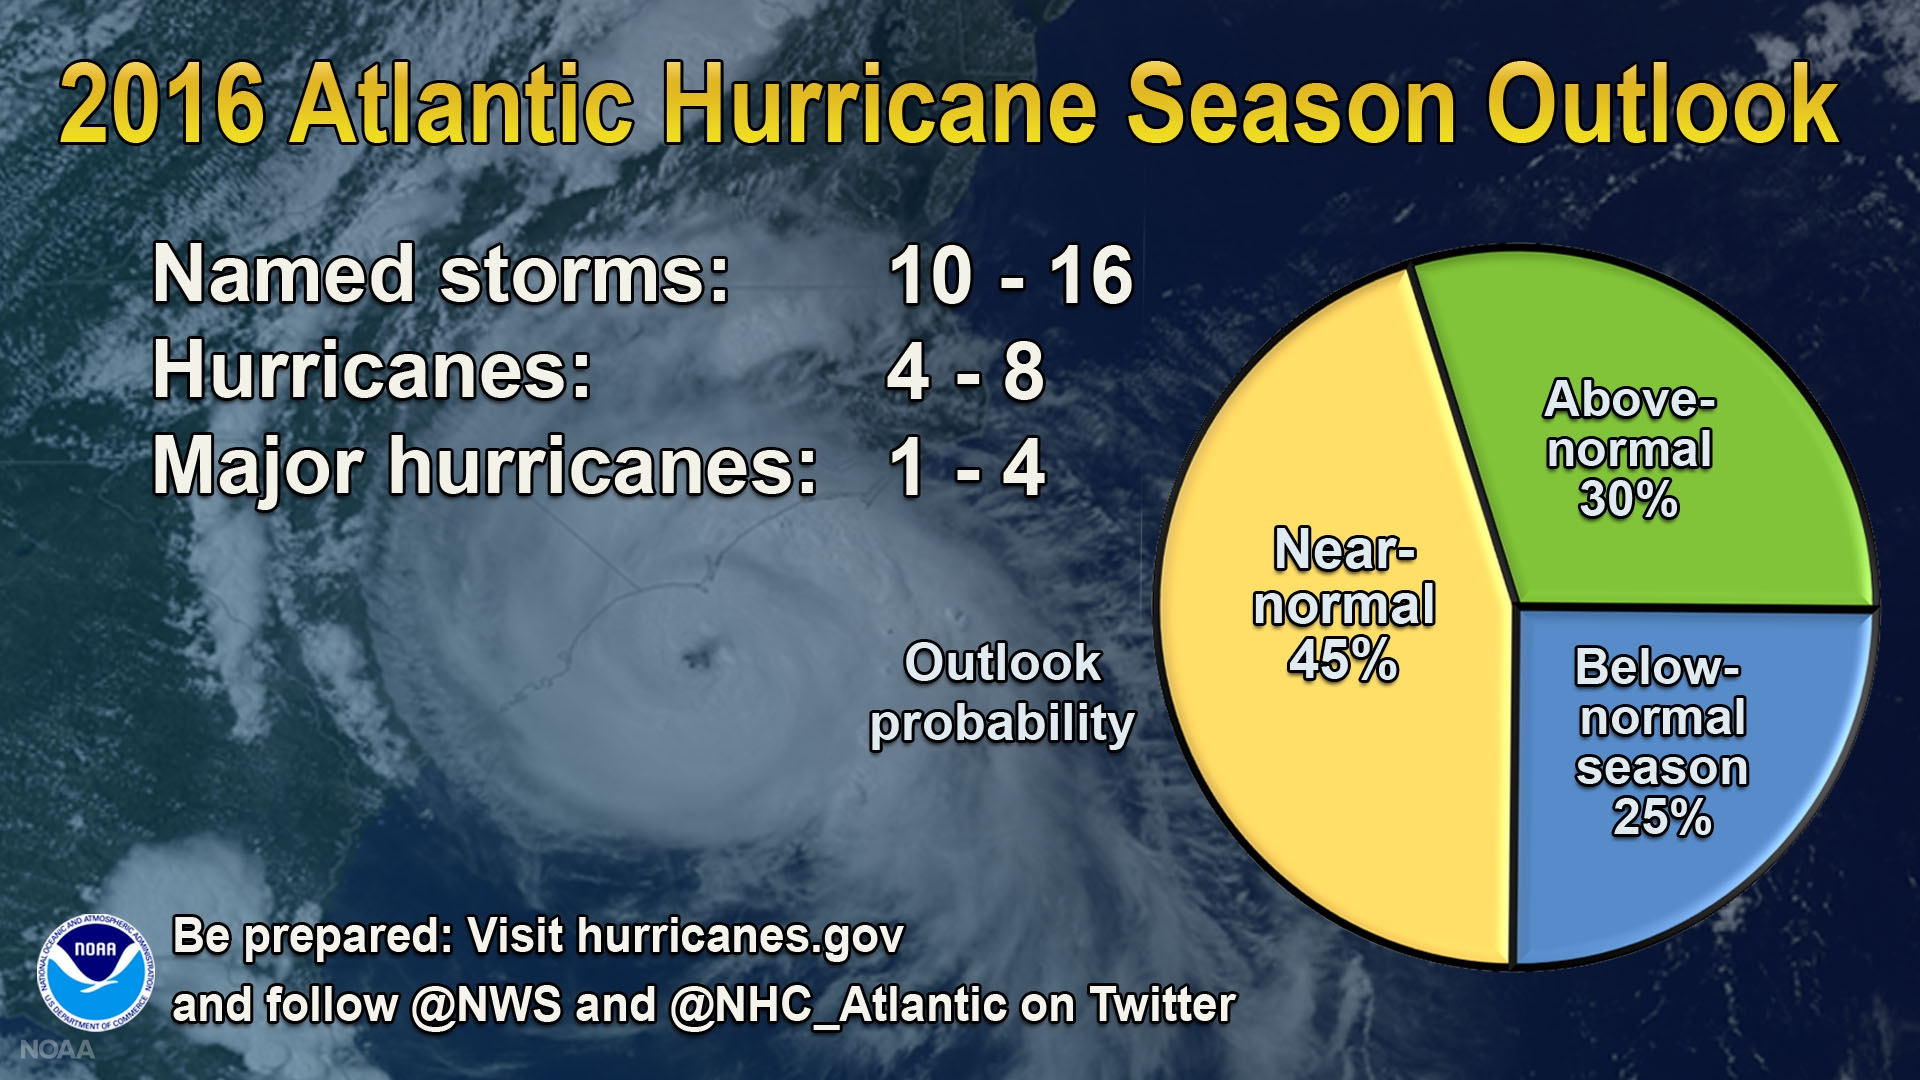 NOAA2016AtlanticHurricaneOutlook